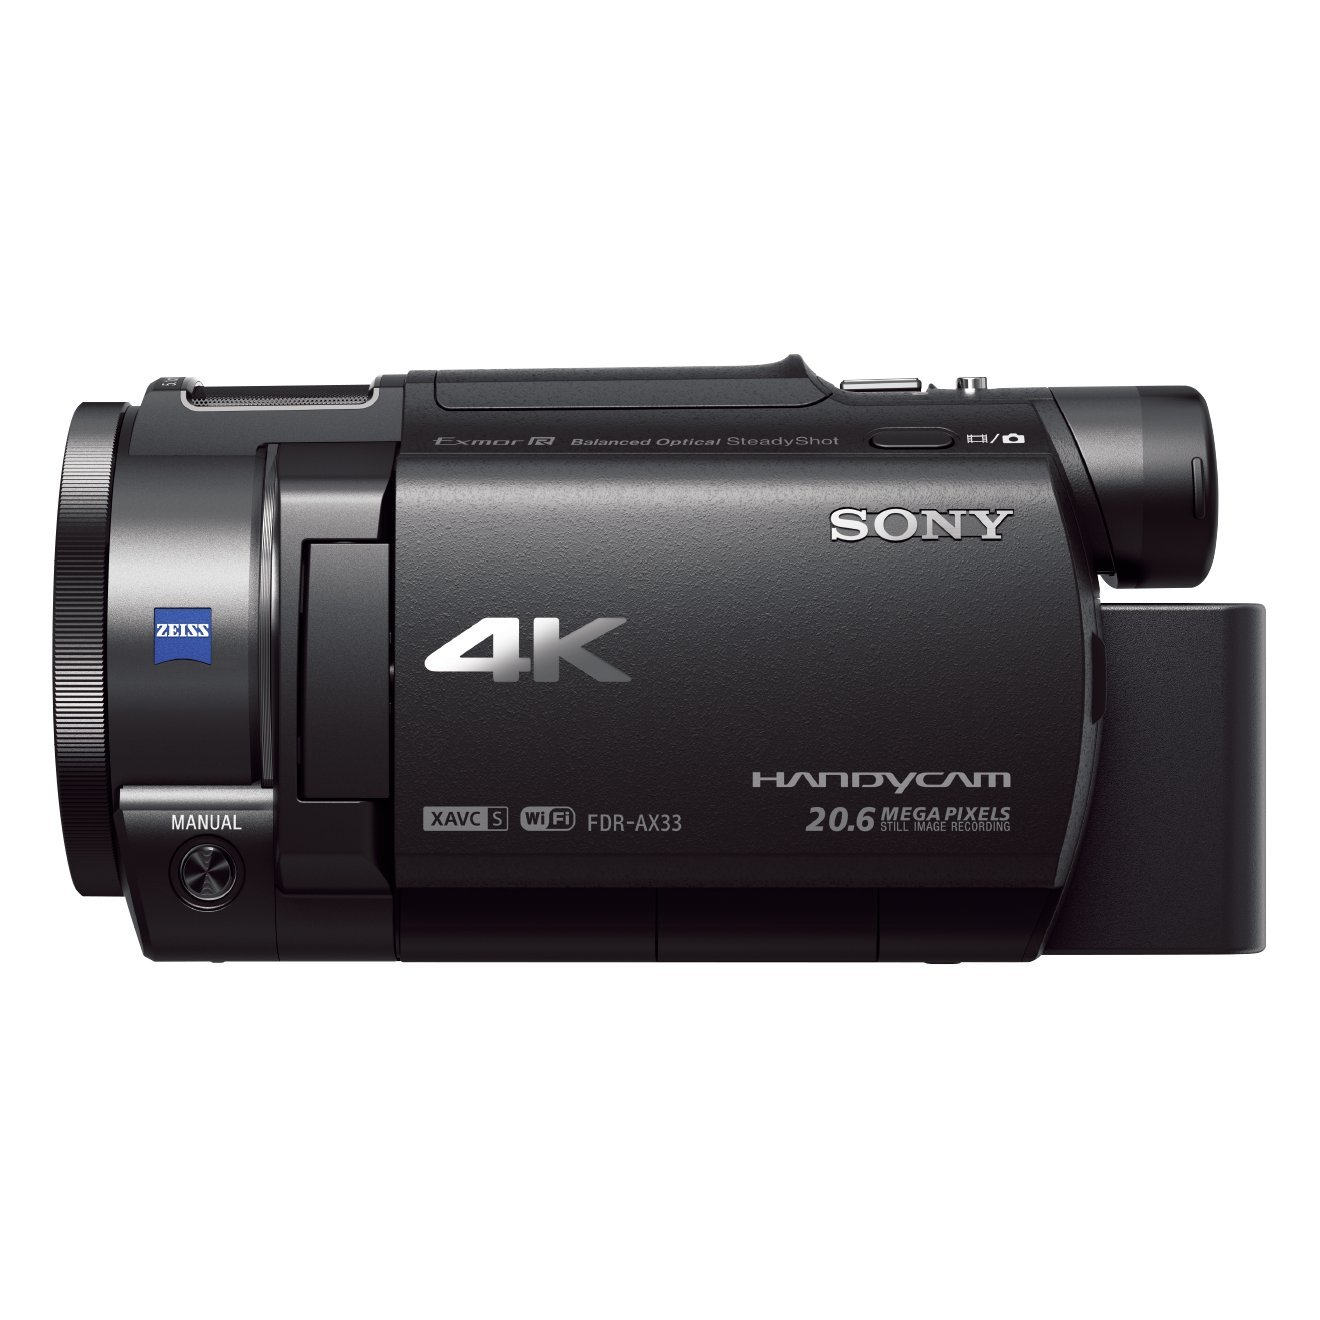 Best Camcorder 2020.Top 20 Best Ultra Hd 4k Camcorders Reviews 2019 2020 On